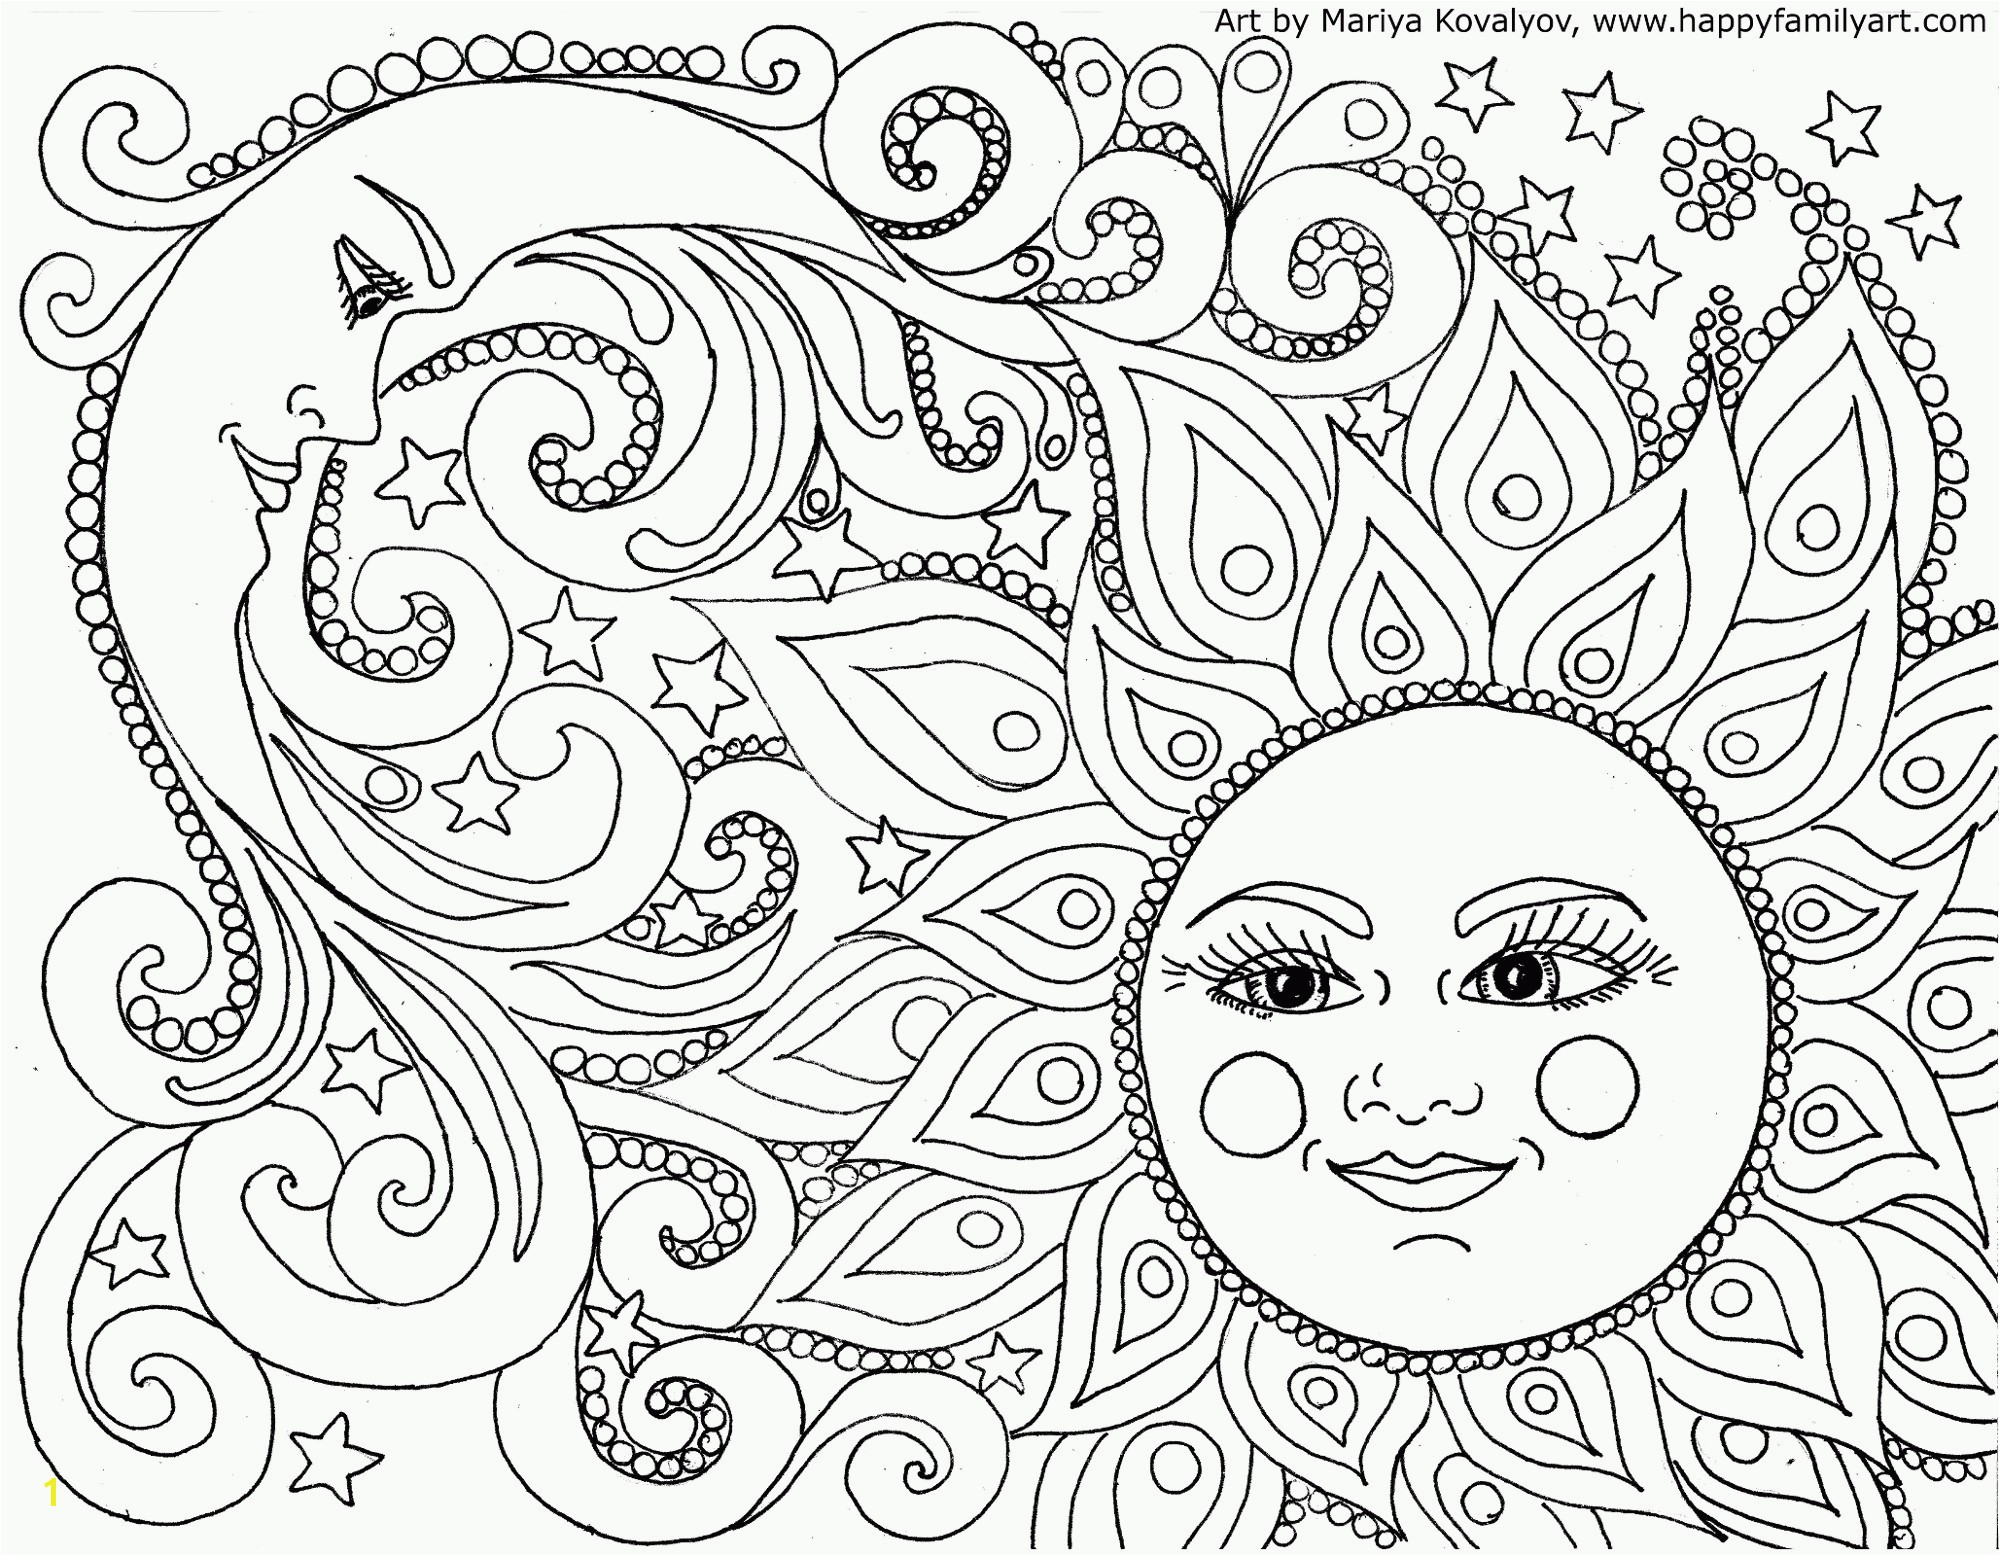 Coloring Pages to Print for Adults Free Printable Coloring Pages for Adults Advanced Fresh New Od Dog